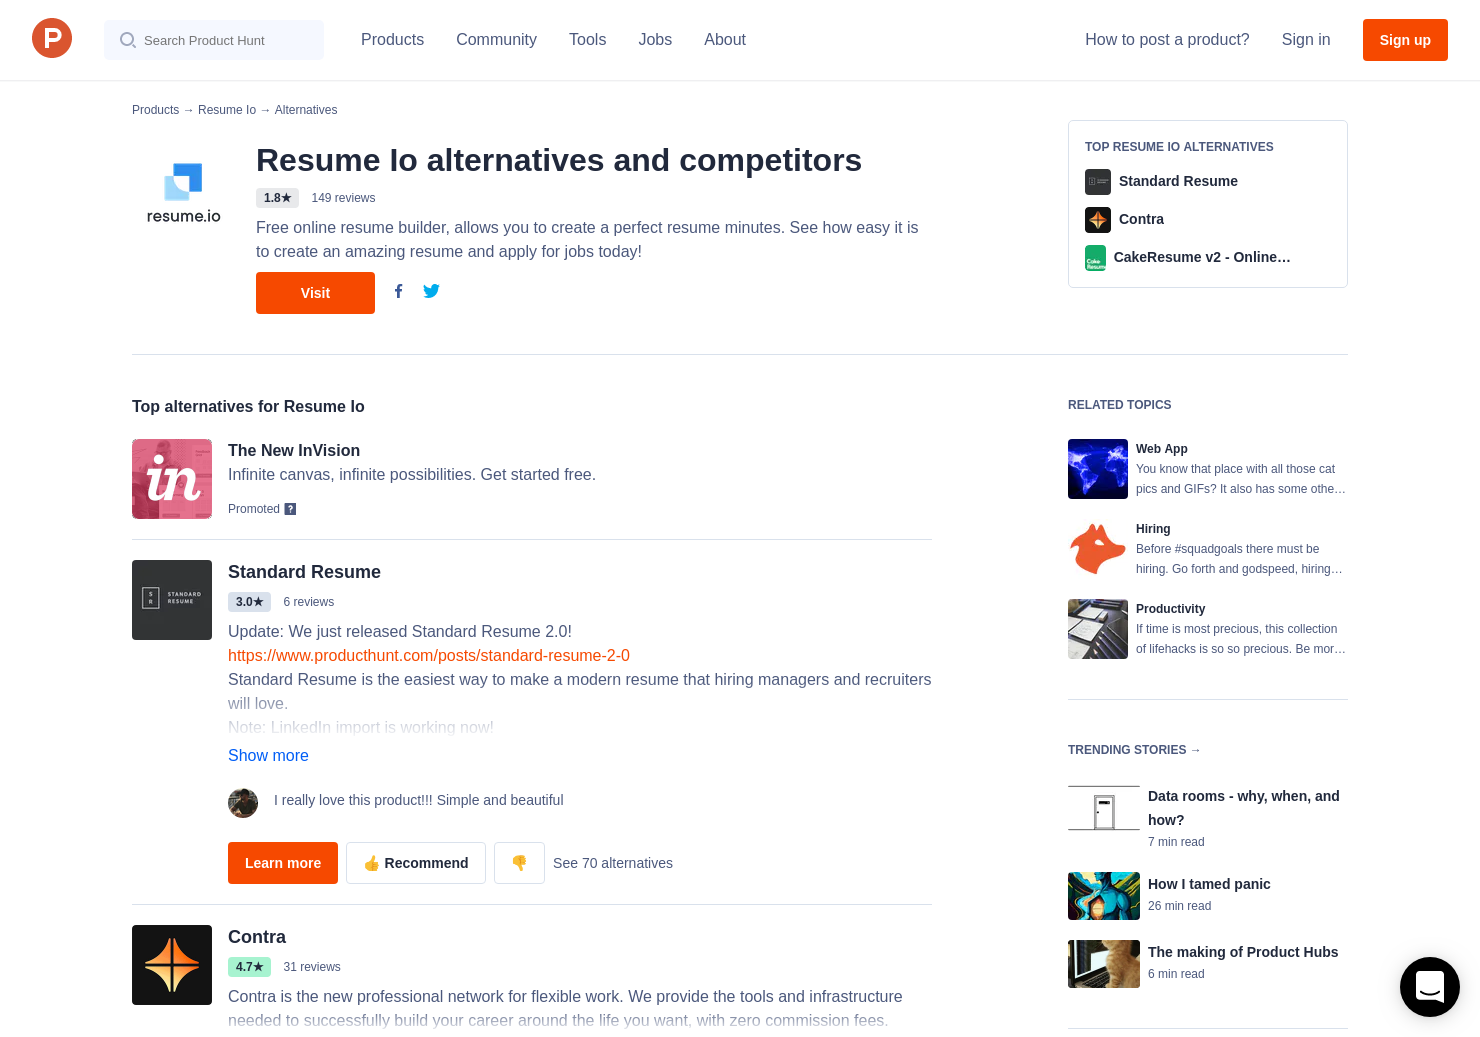 23 alternatives to resume io product hunt